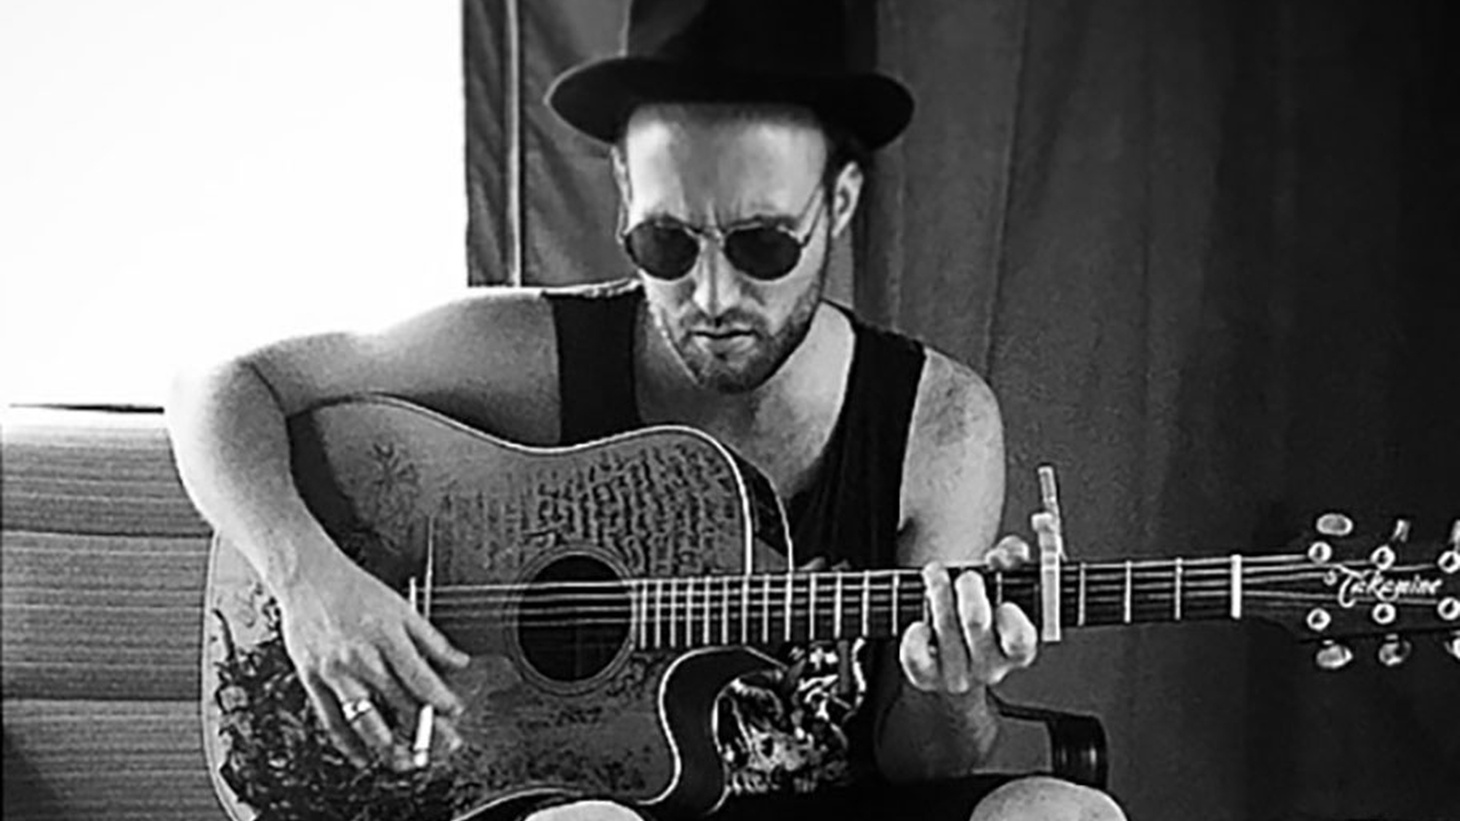 On the eve of Halloween we turn to singer/songwriter Ruston Kelly, who has penned a song for the occasion.